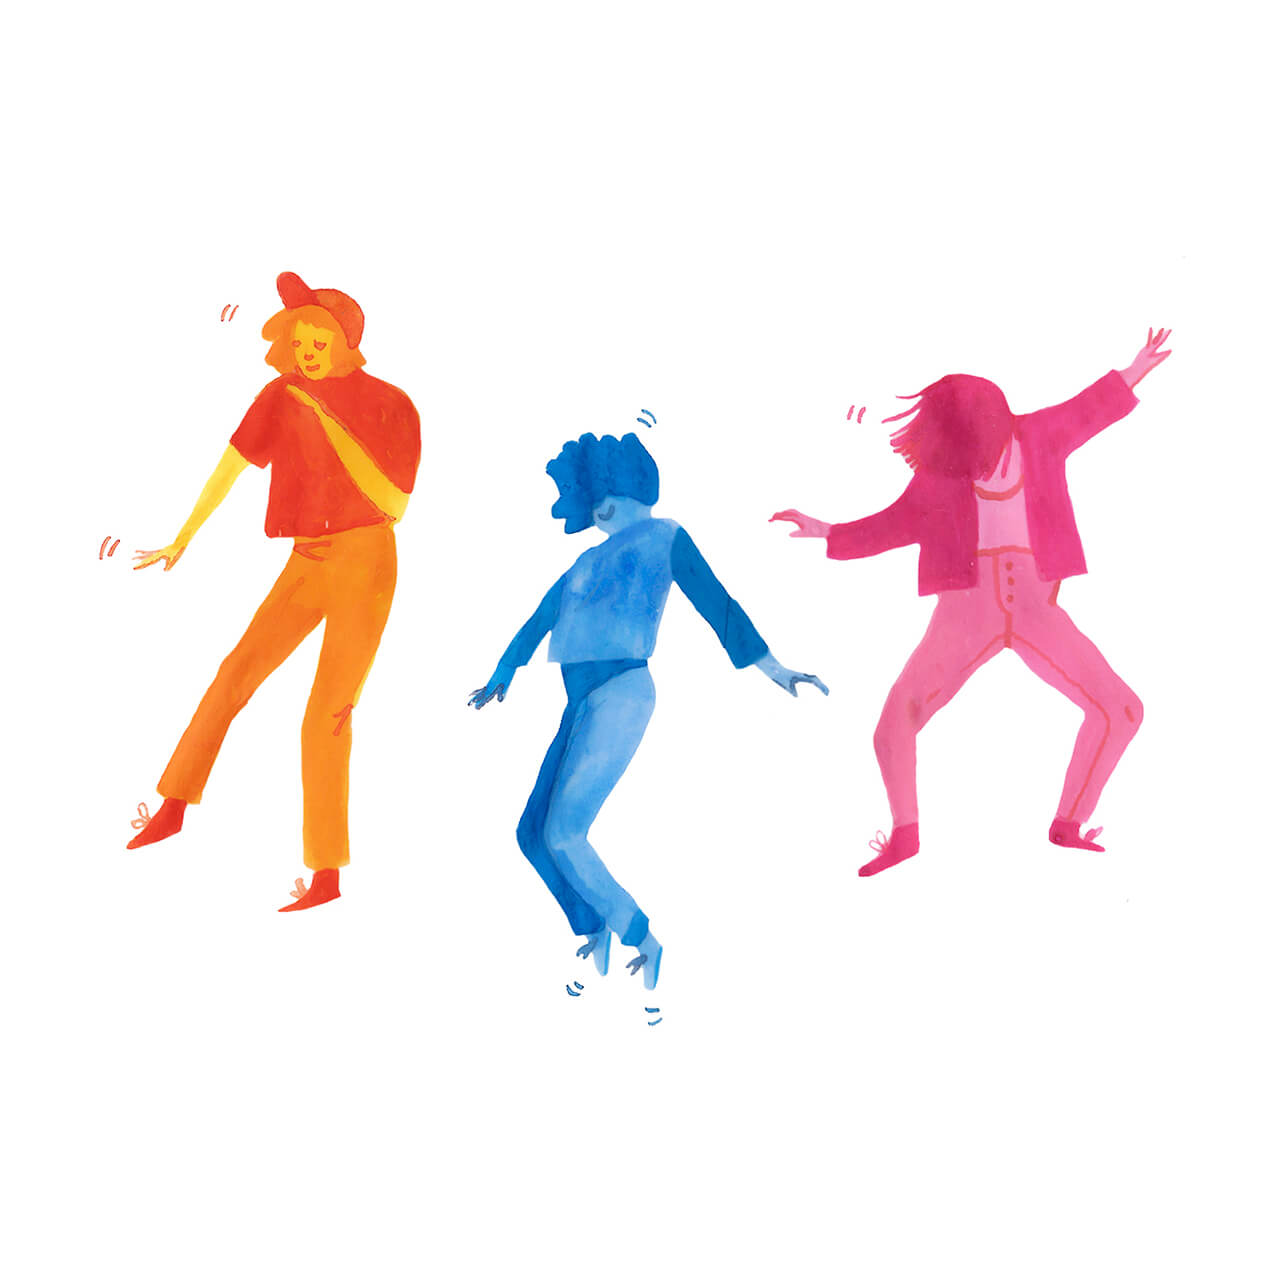 Three illustrated characters dancing